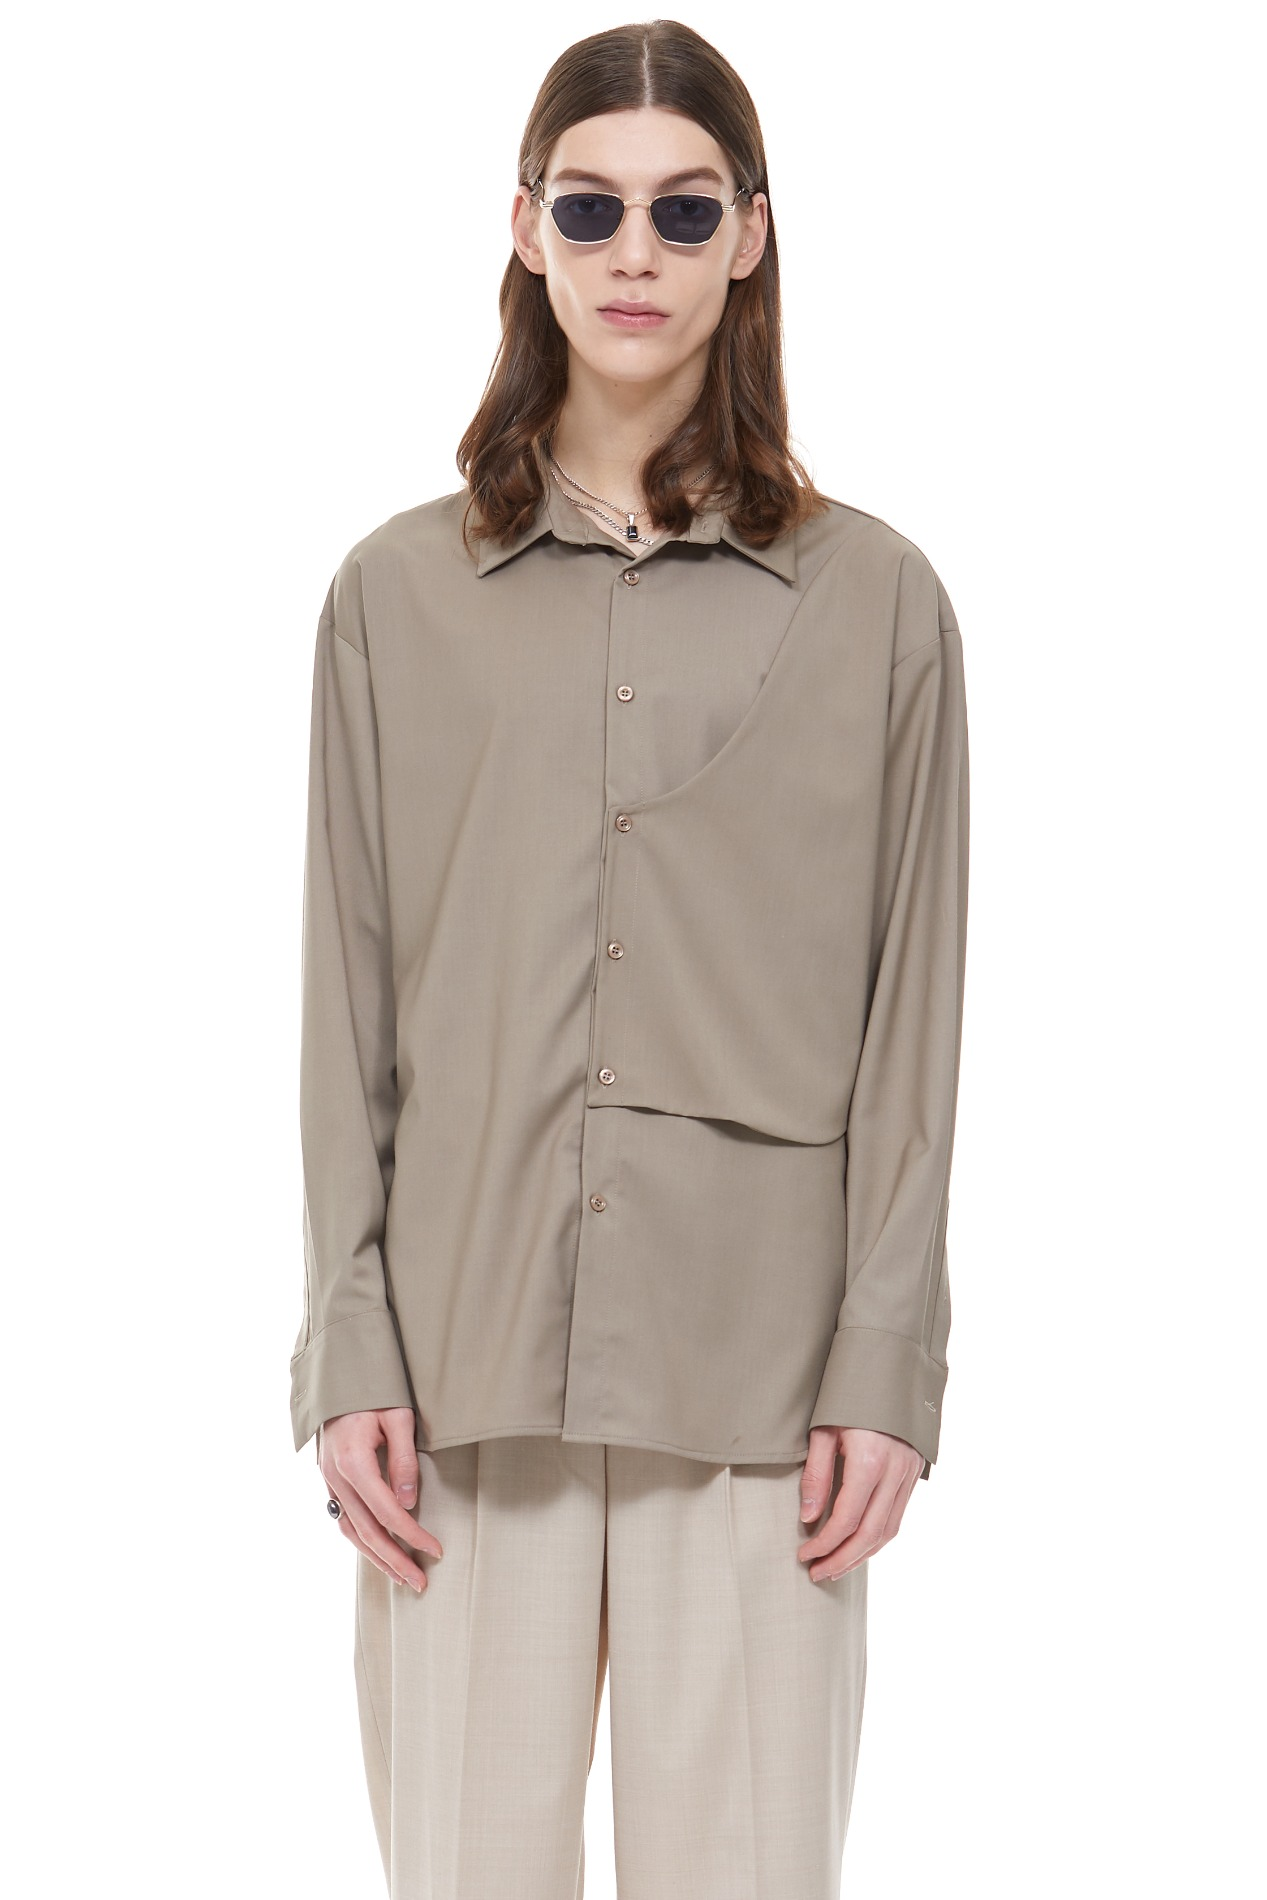 [ATELIER LINE]WRAP SHIRT(Brown)